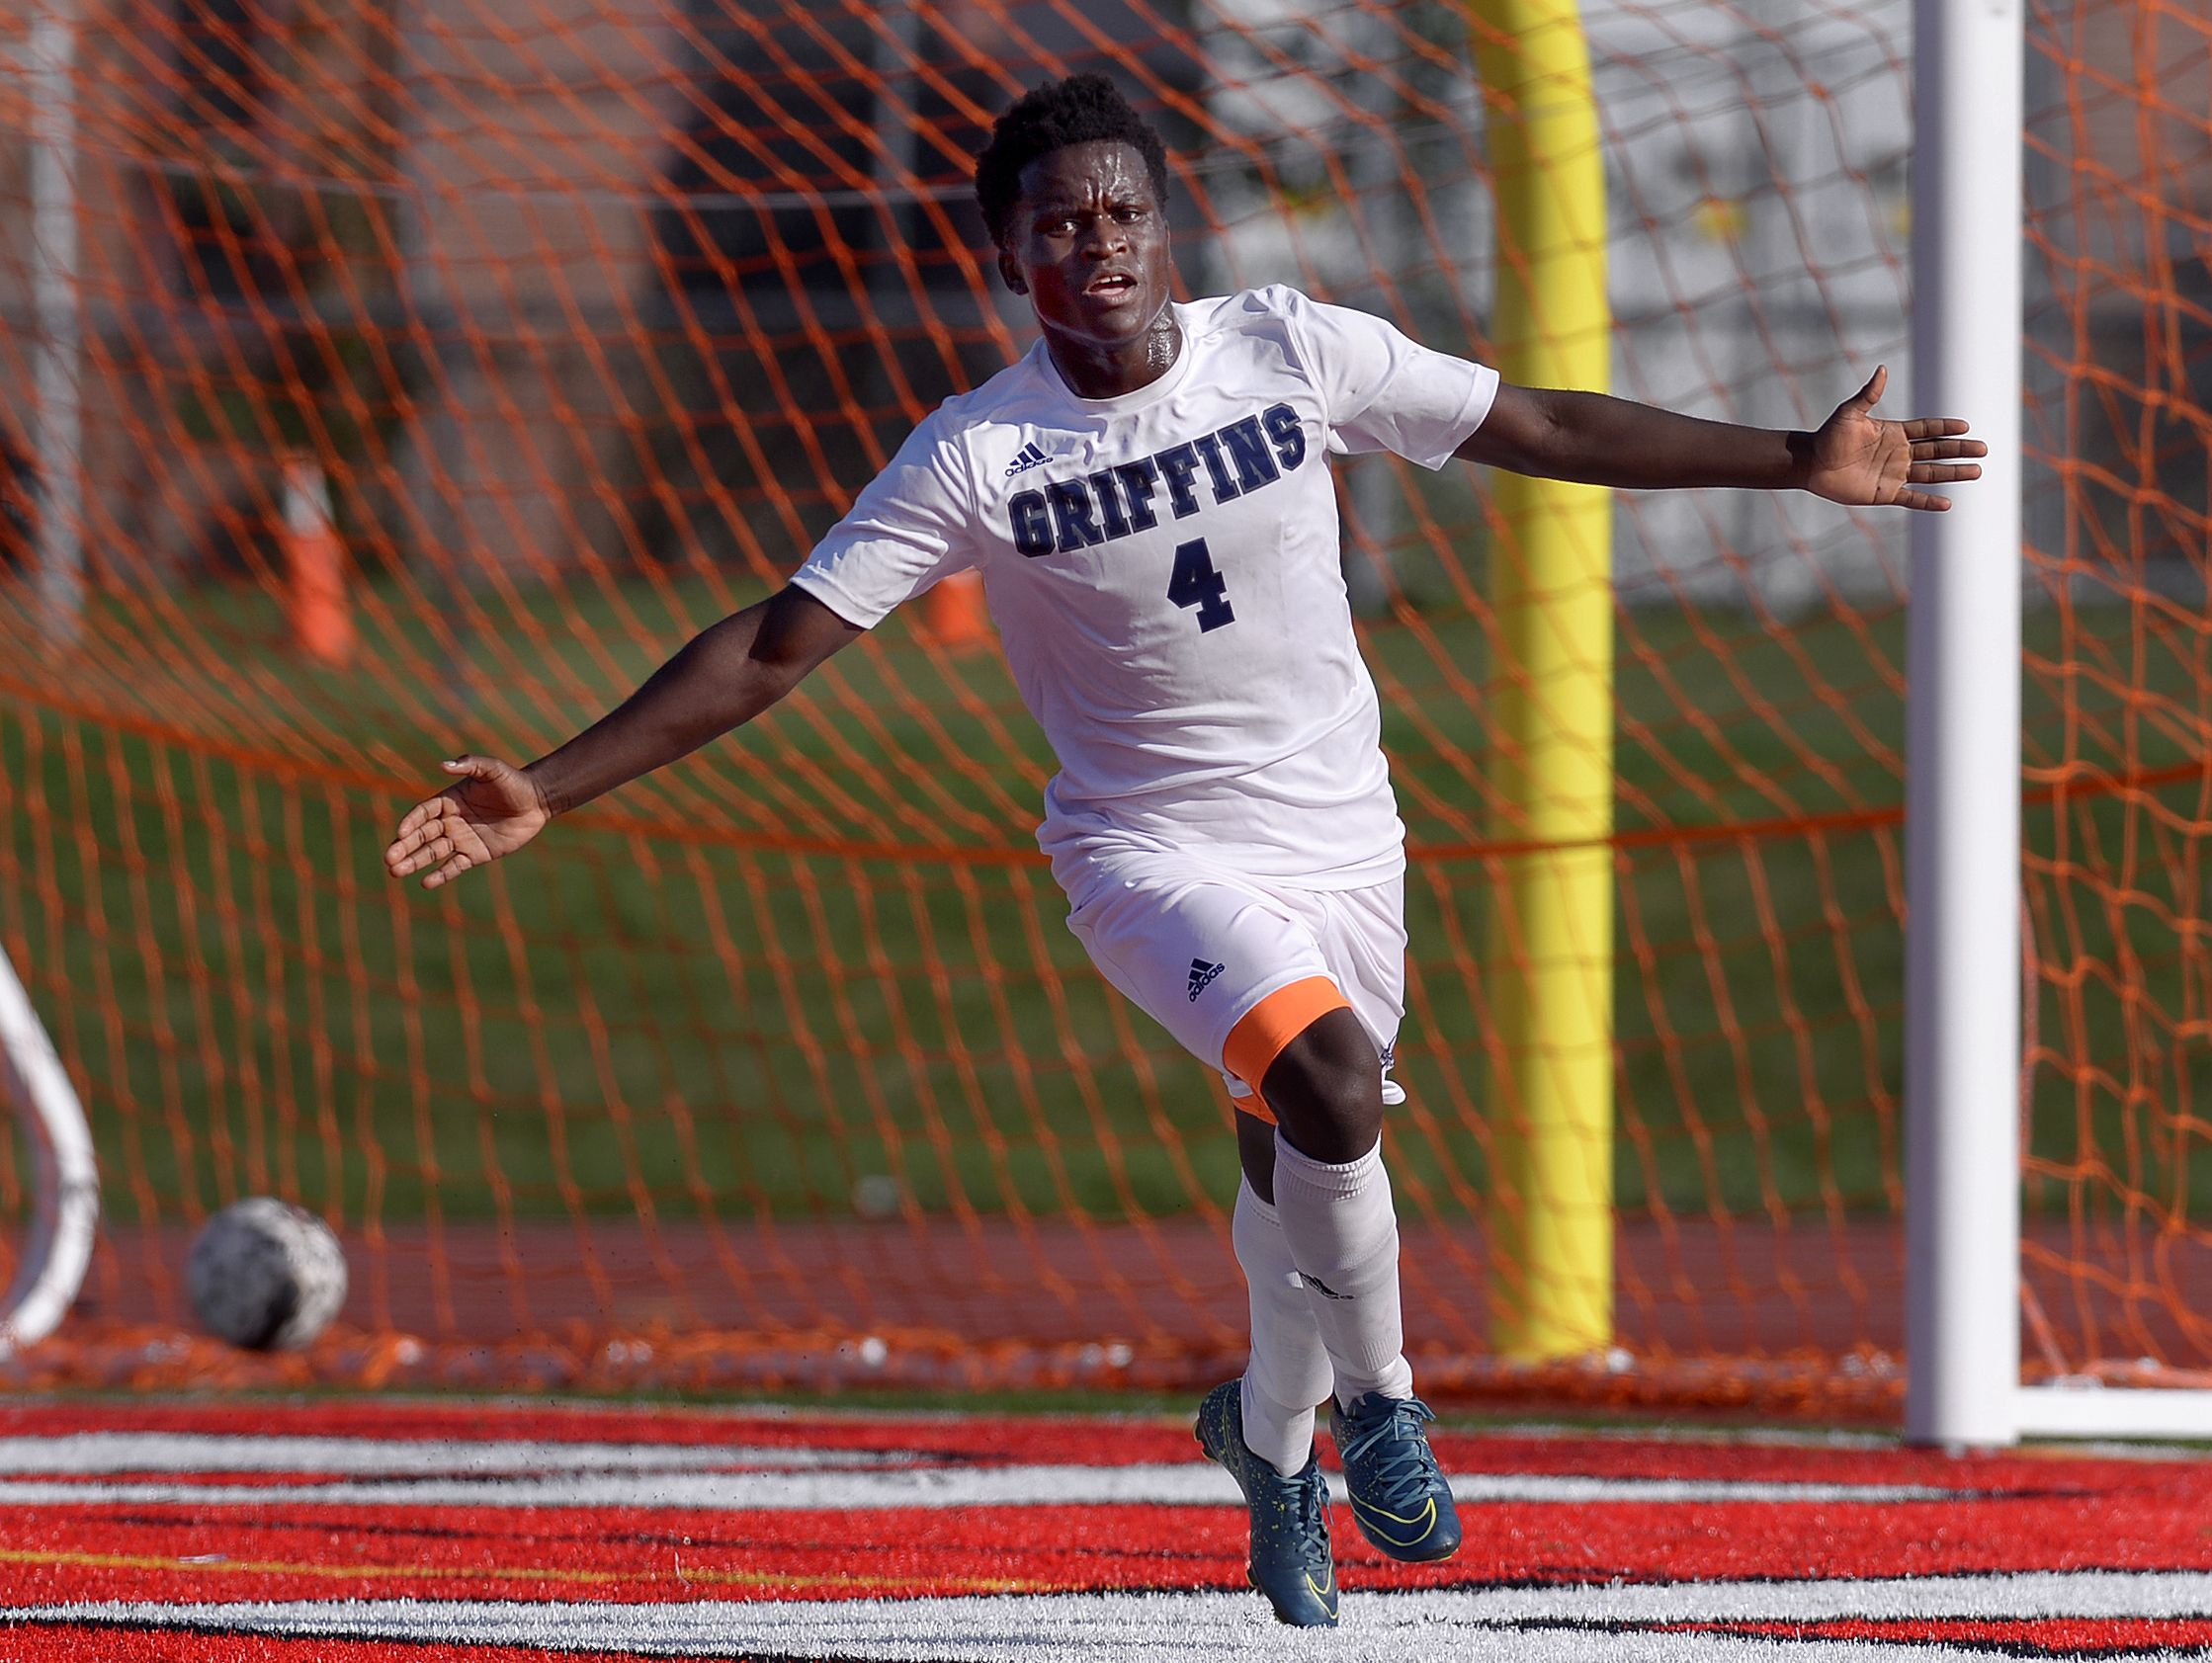 World of Inquiry's Toyi Hakizimana, a sophomore and two-time AGR pick, celebrates his goal against McQuaid in the Griffins' 2-1 overtime win on Sept. 21.